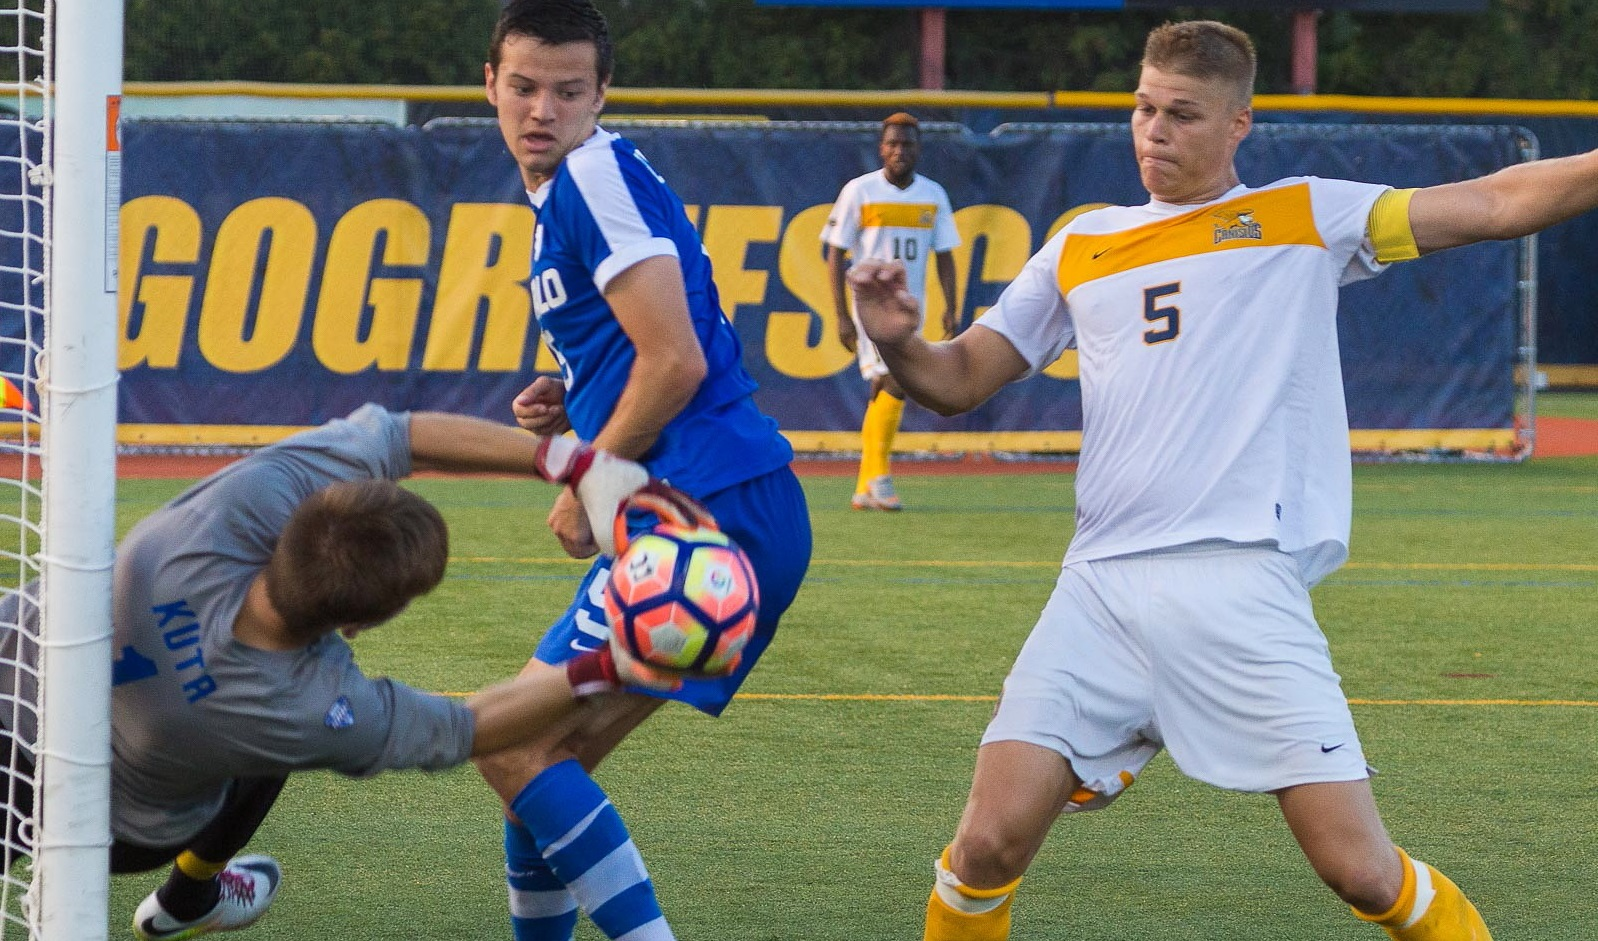 Canisius men's primer: Fitter Teupen to anchor powerful back